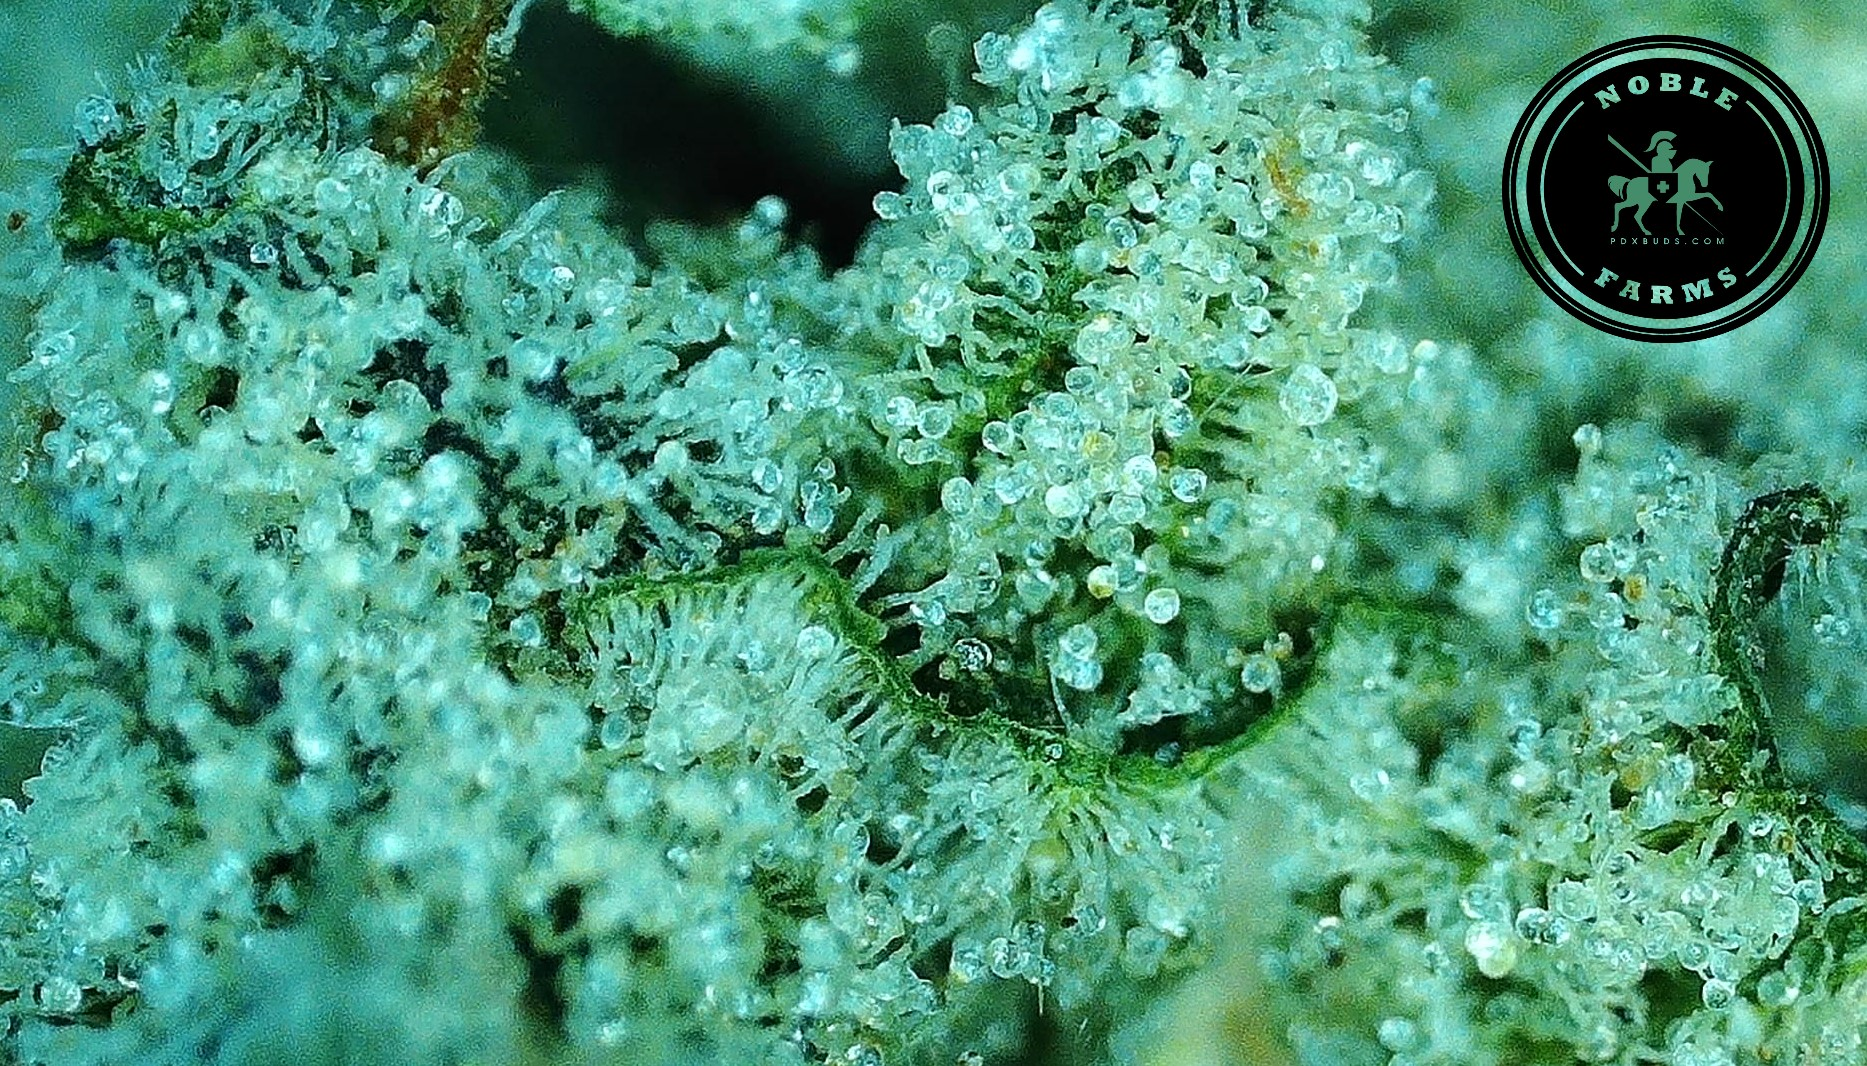 VVS Chem #2 Zoom -- Noble Farms.jpg